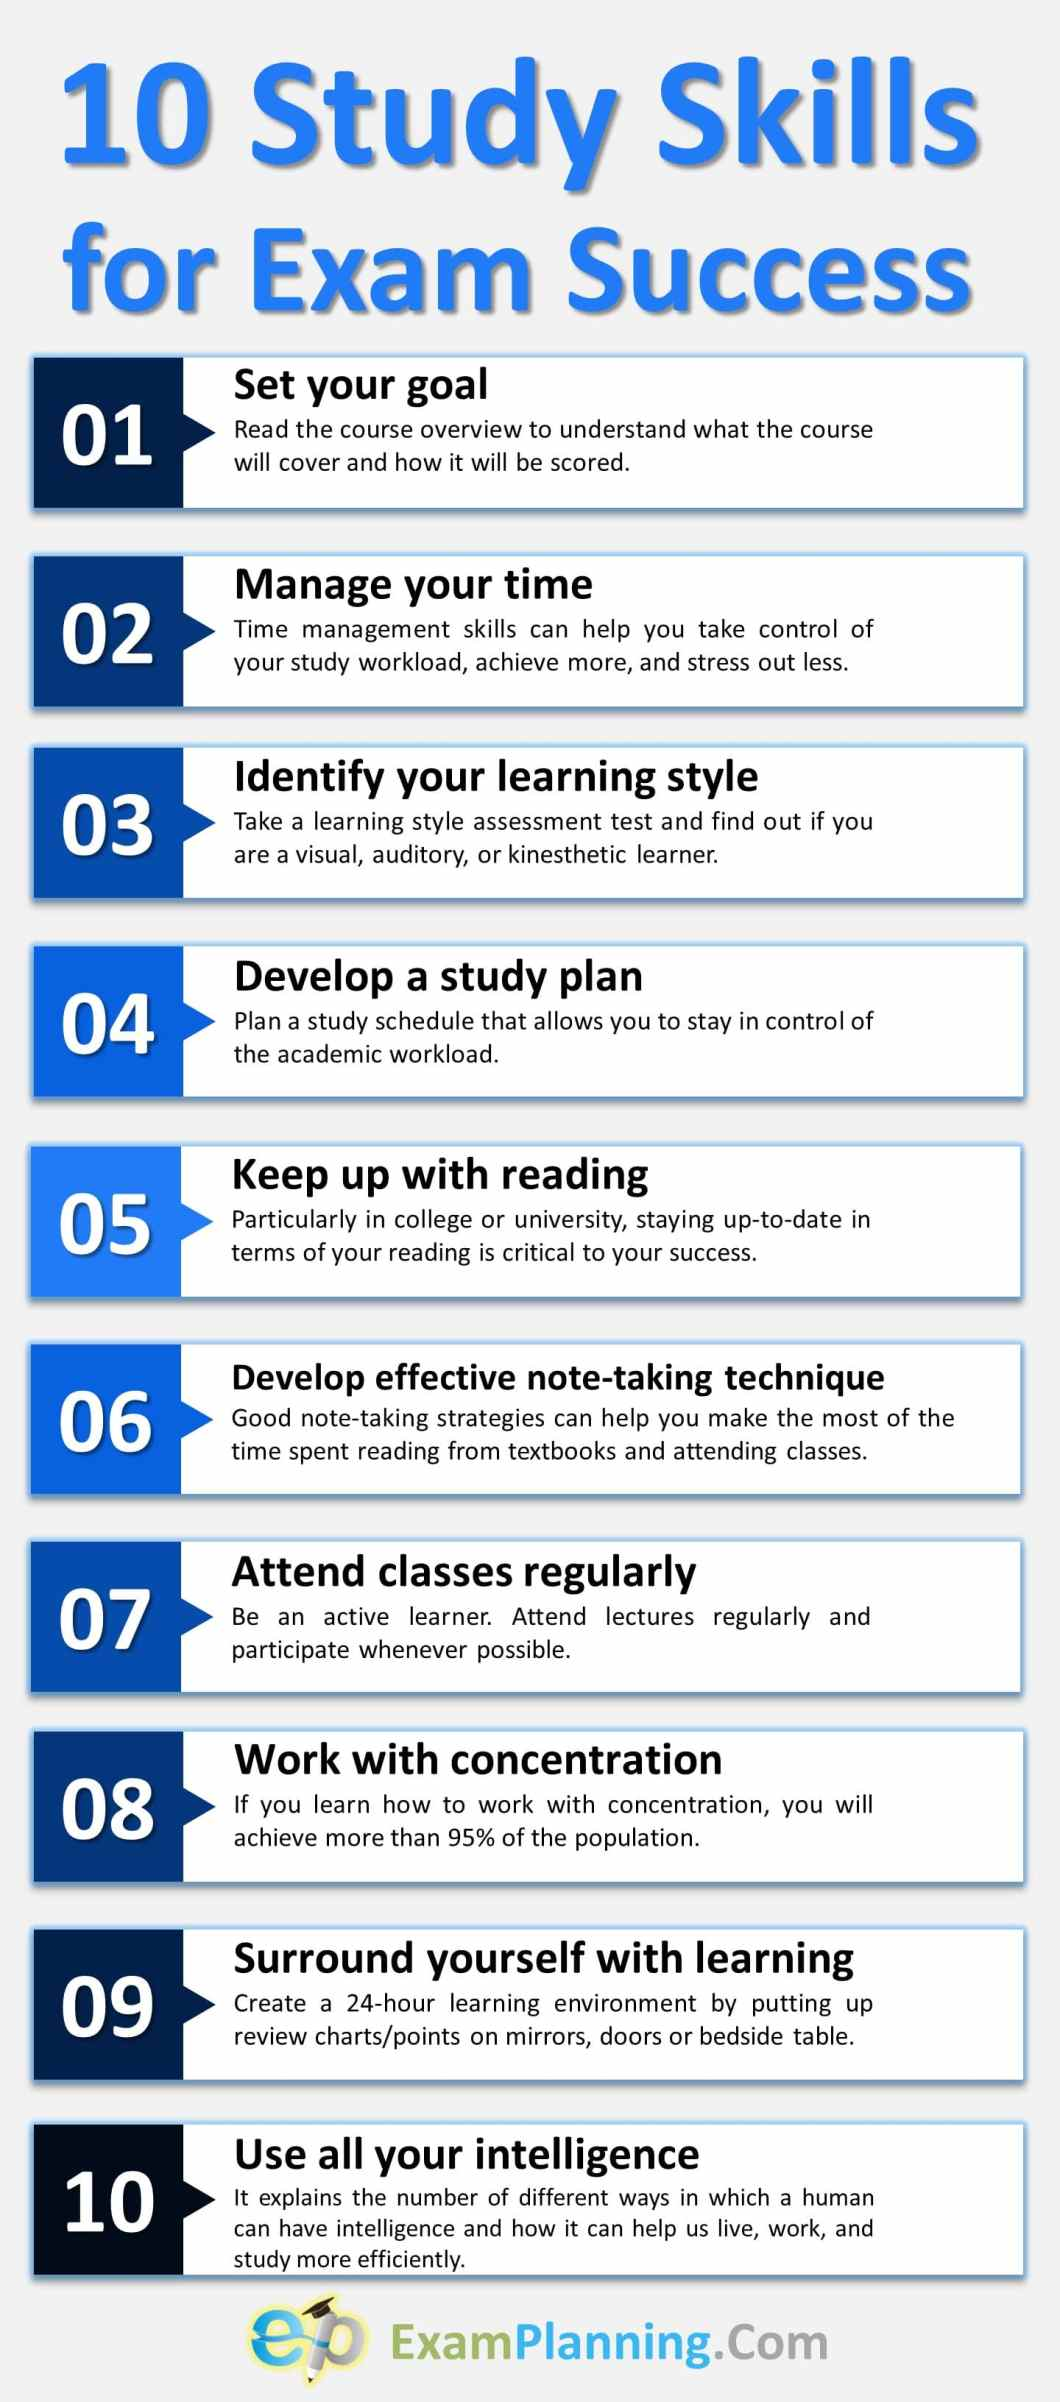 10 Study Skills for Exam Success